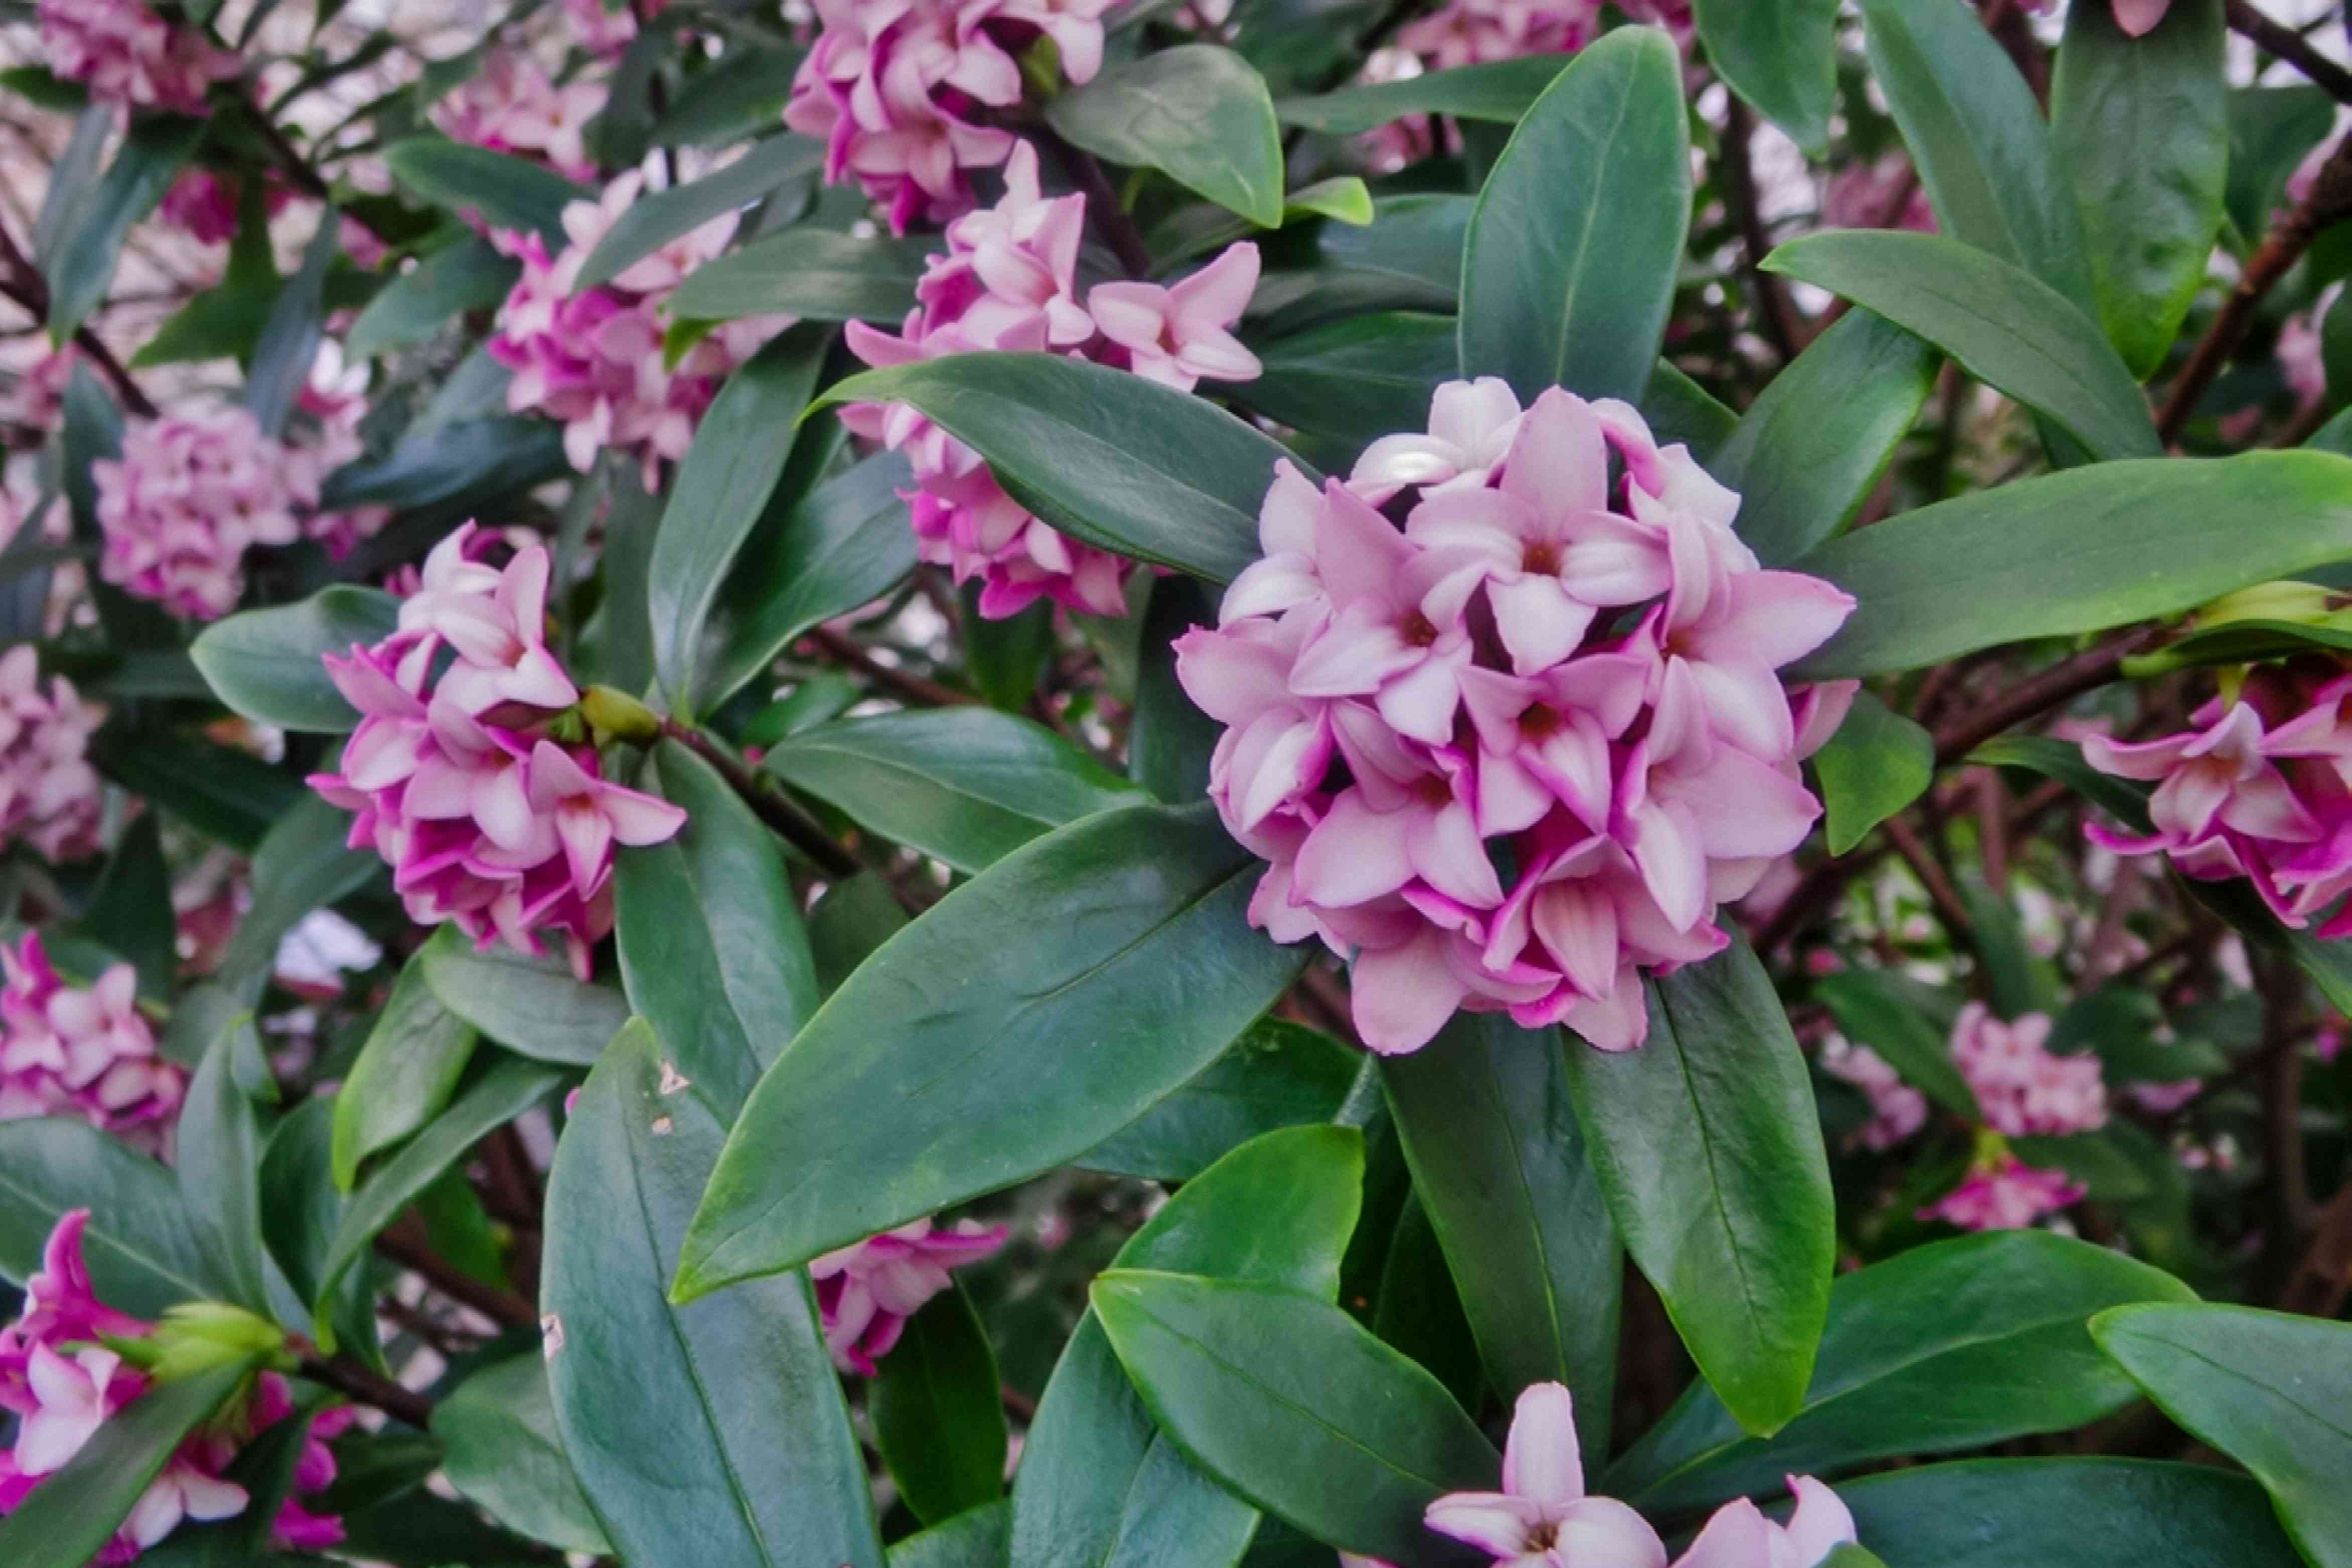 Poisonous daphne bush with light pink flowers and leaves